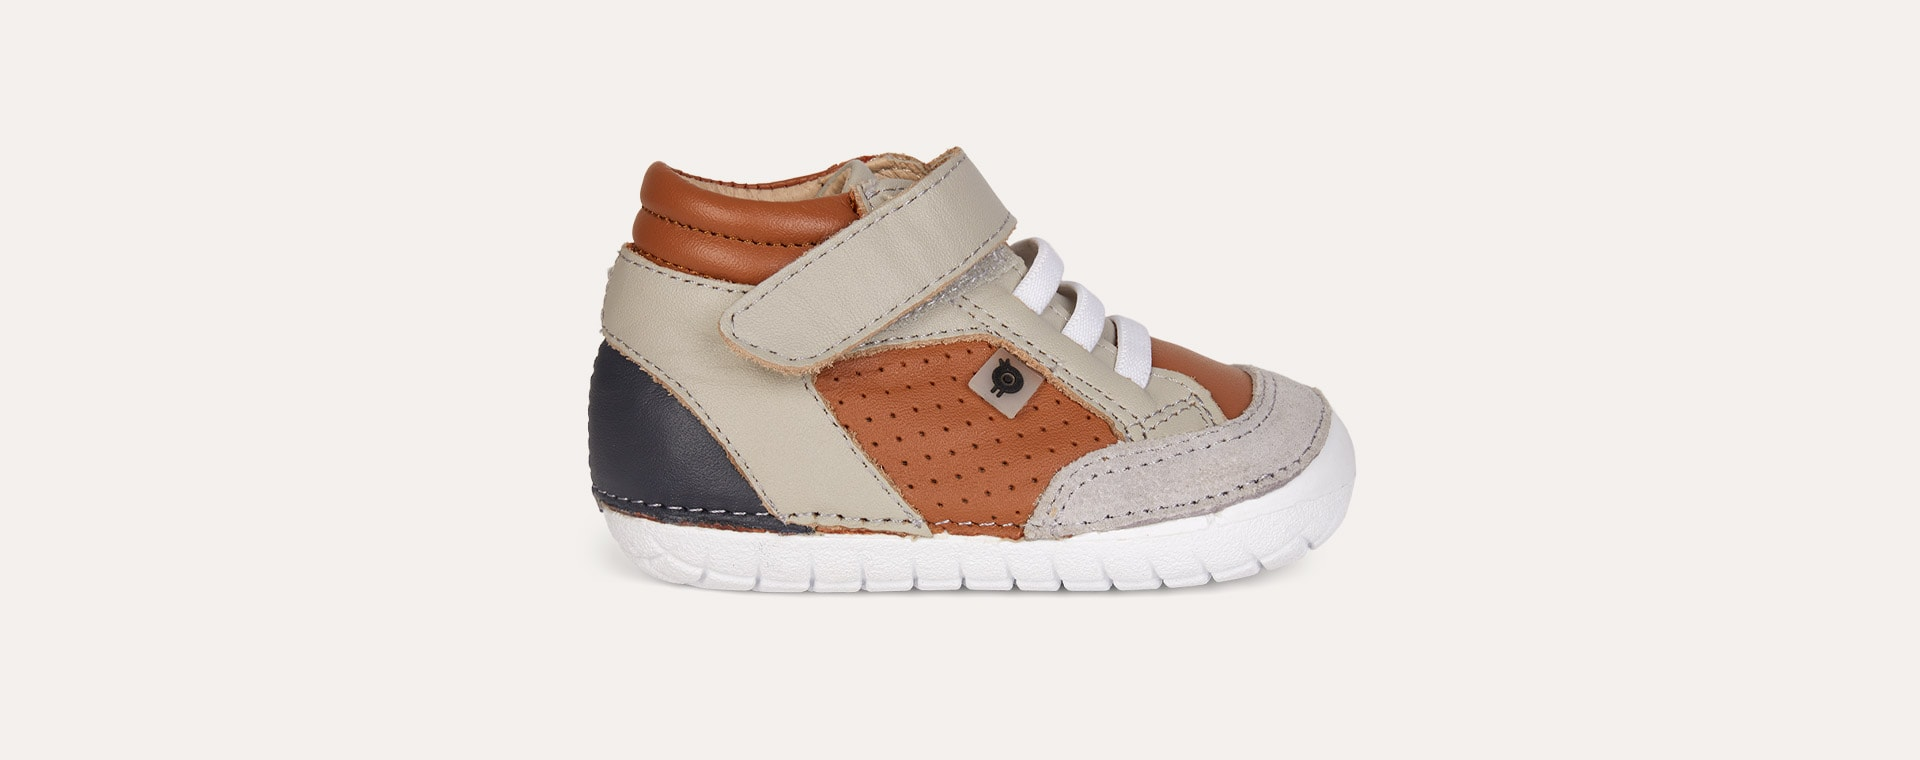 Tan Grey old soles AW'19 Retro Pave First High Shoe